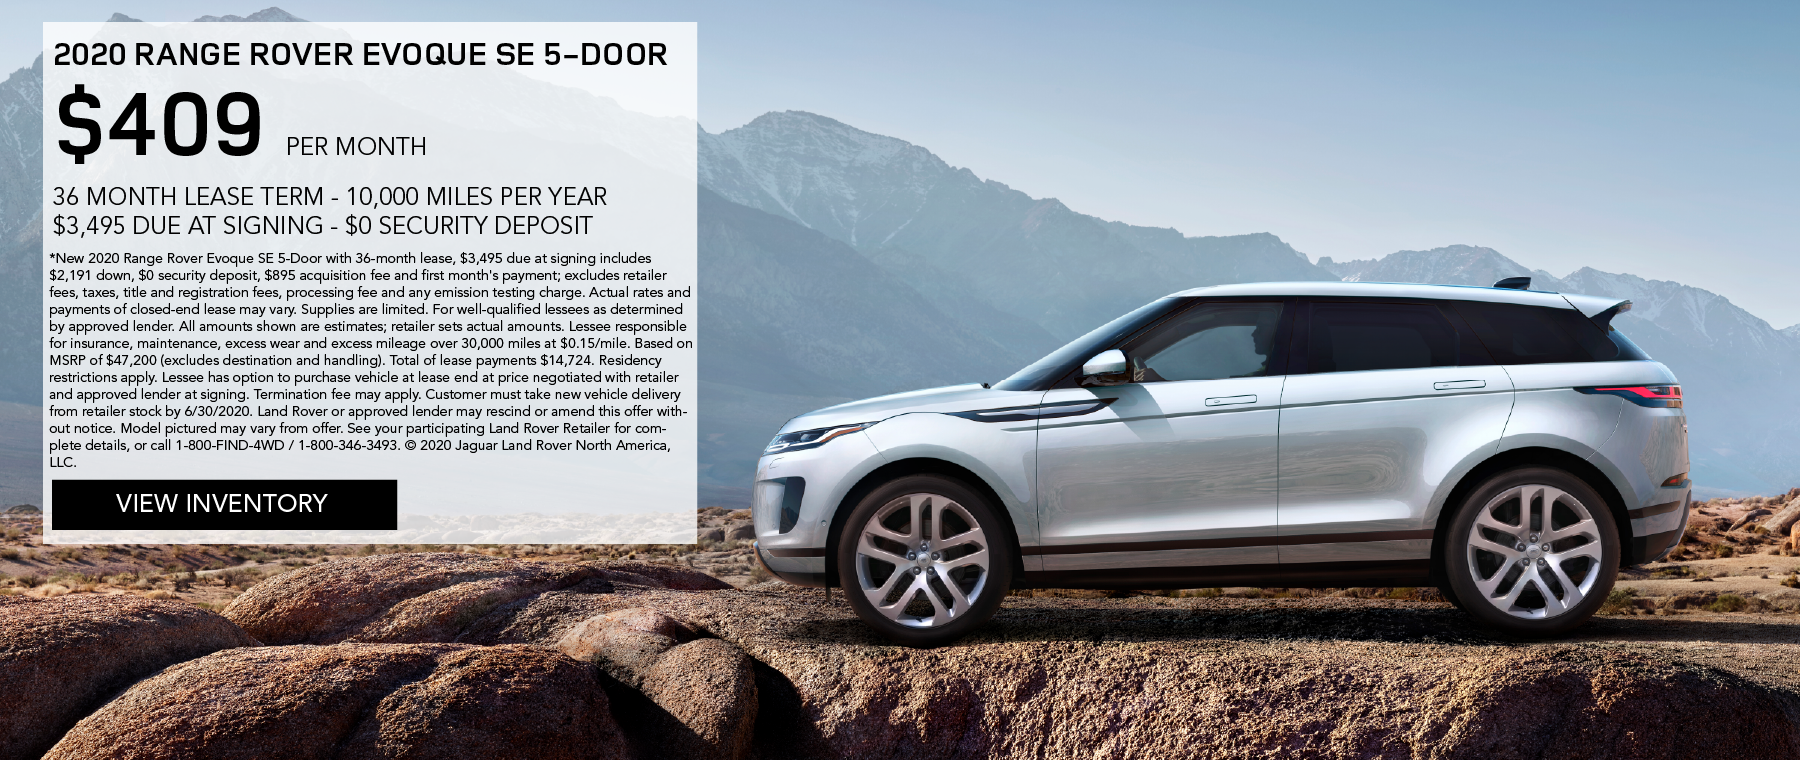 2020 RANGE ROVER EVOQUE SE 5-DOOR. $409 PER MONTH. 36 MONTH LEASE TERM. $3,495 CASH DUE AT SIGNING. $0 SECURITY DEPOSIT. 10,000 MILES PER YEAR. EXCLUDES RETAILER FEES, TAXES, TITLE AND REGISTRATION FEES, PROCESSING FEE AND ANY EMISSION TESTING CHARGE. OFFER ENDS 6/30/2020. VIEW INVENTORY. SILVER LAND ROVER EVOQUE PARKED ON DIRT ROAD IN FRONT OF MOUNTAIN.